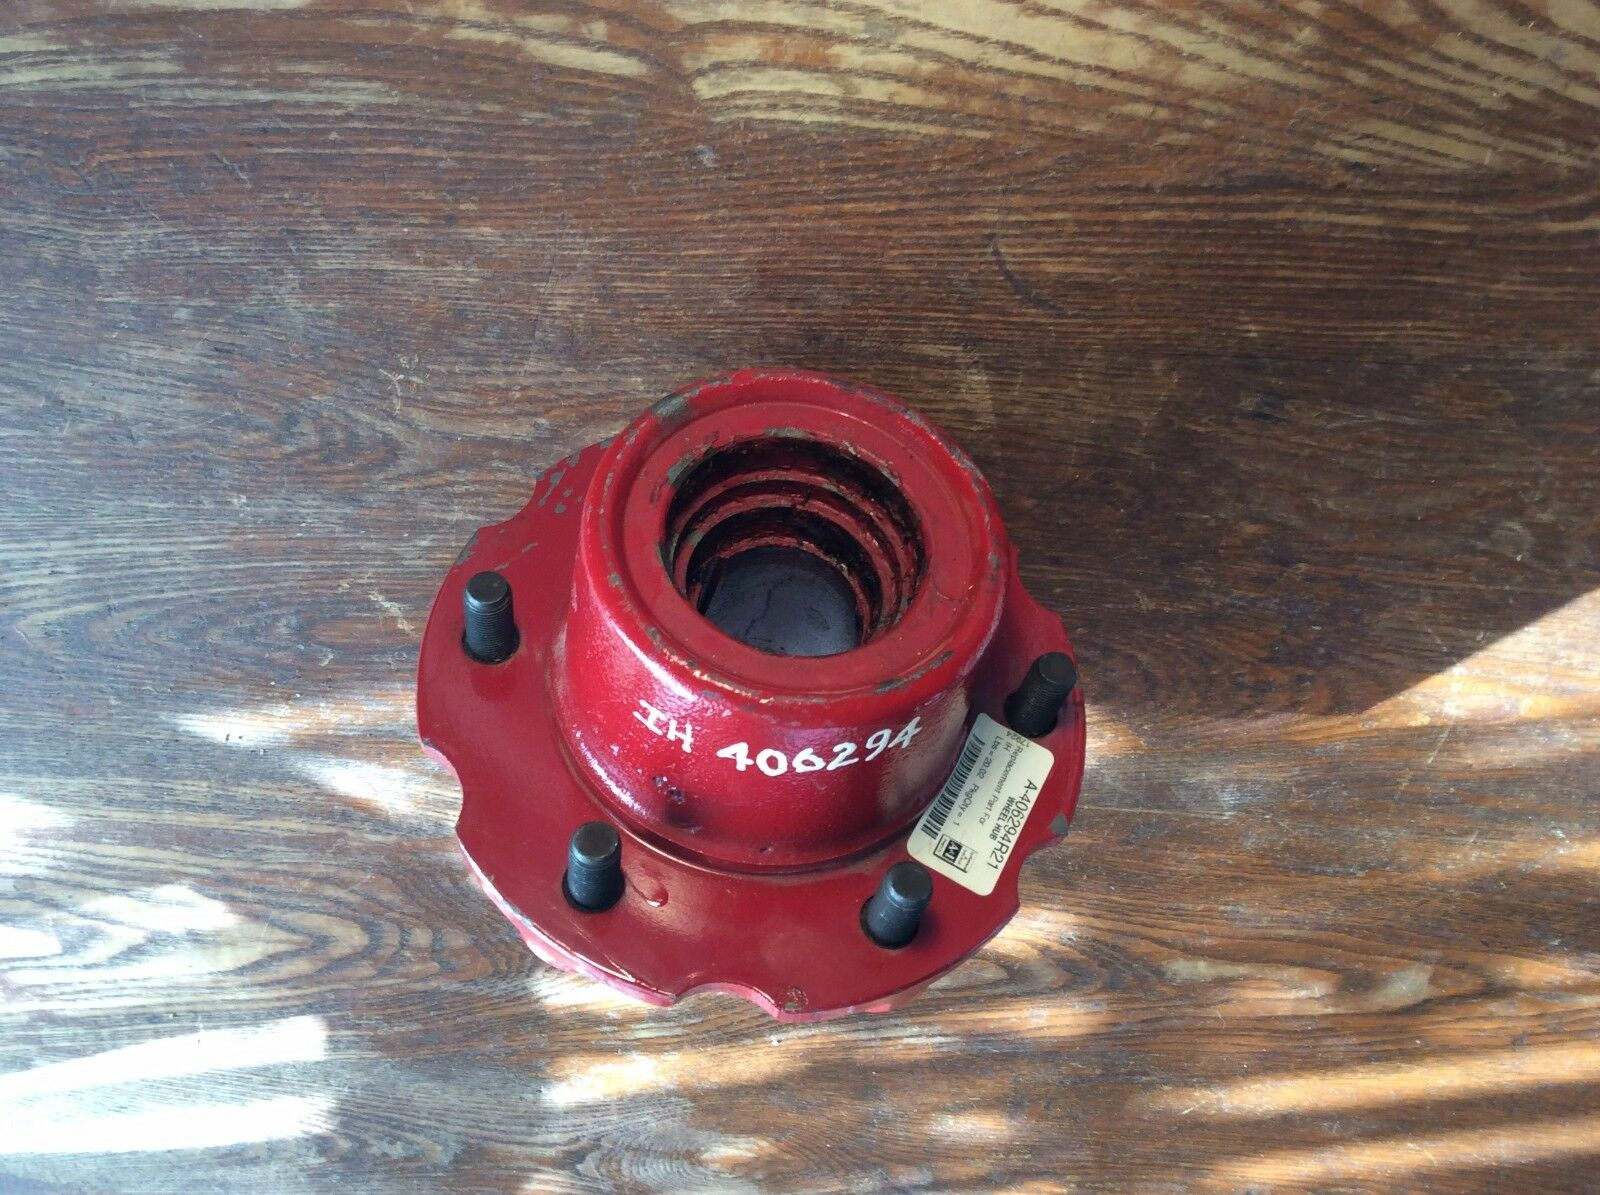 406294R21 6 Bolt Wheel Hub for Case IH Tractors